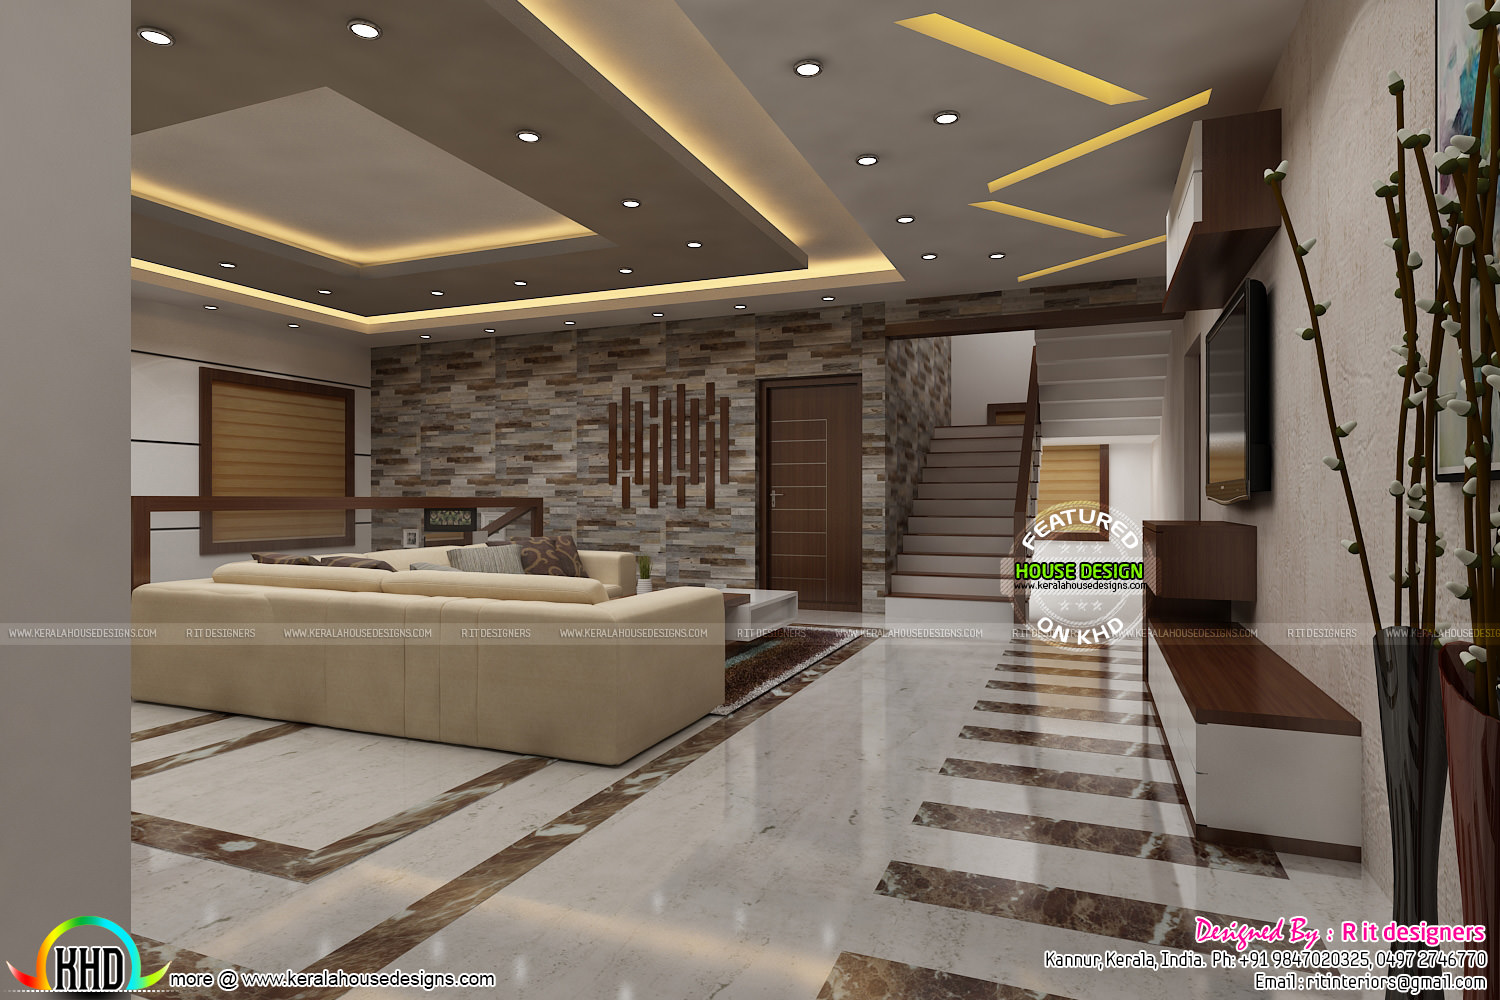 Most modern kerala living room interior kerala home - House interior design pictures living room ...